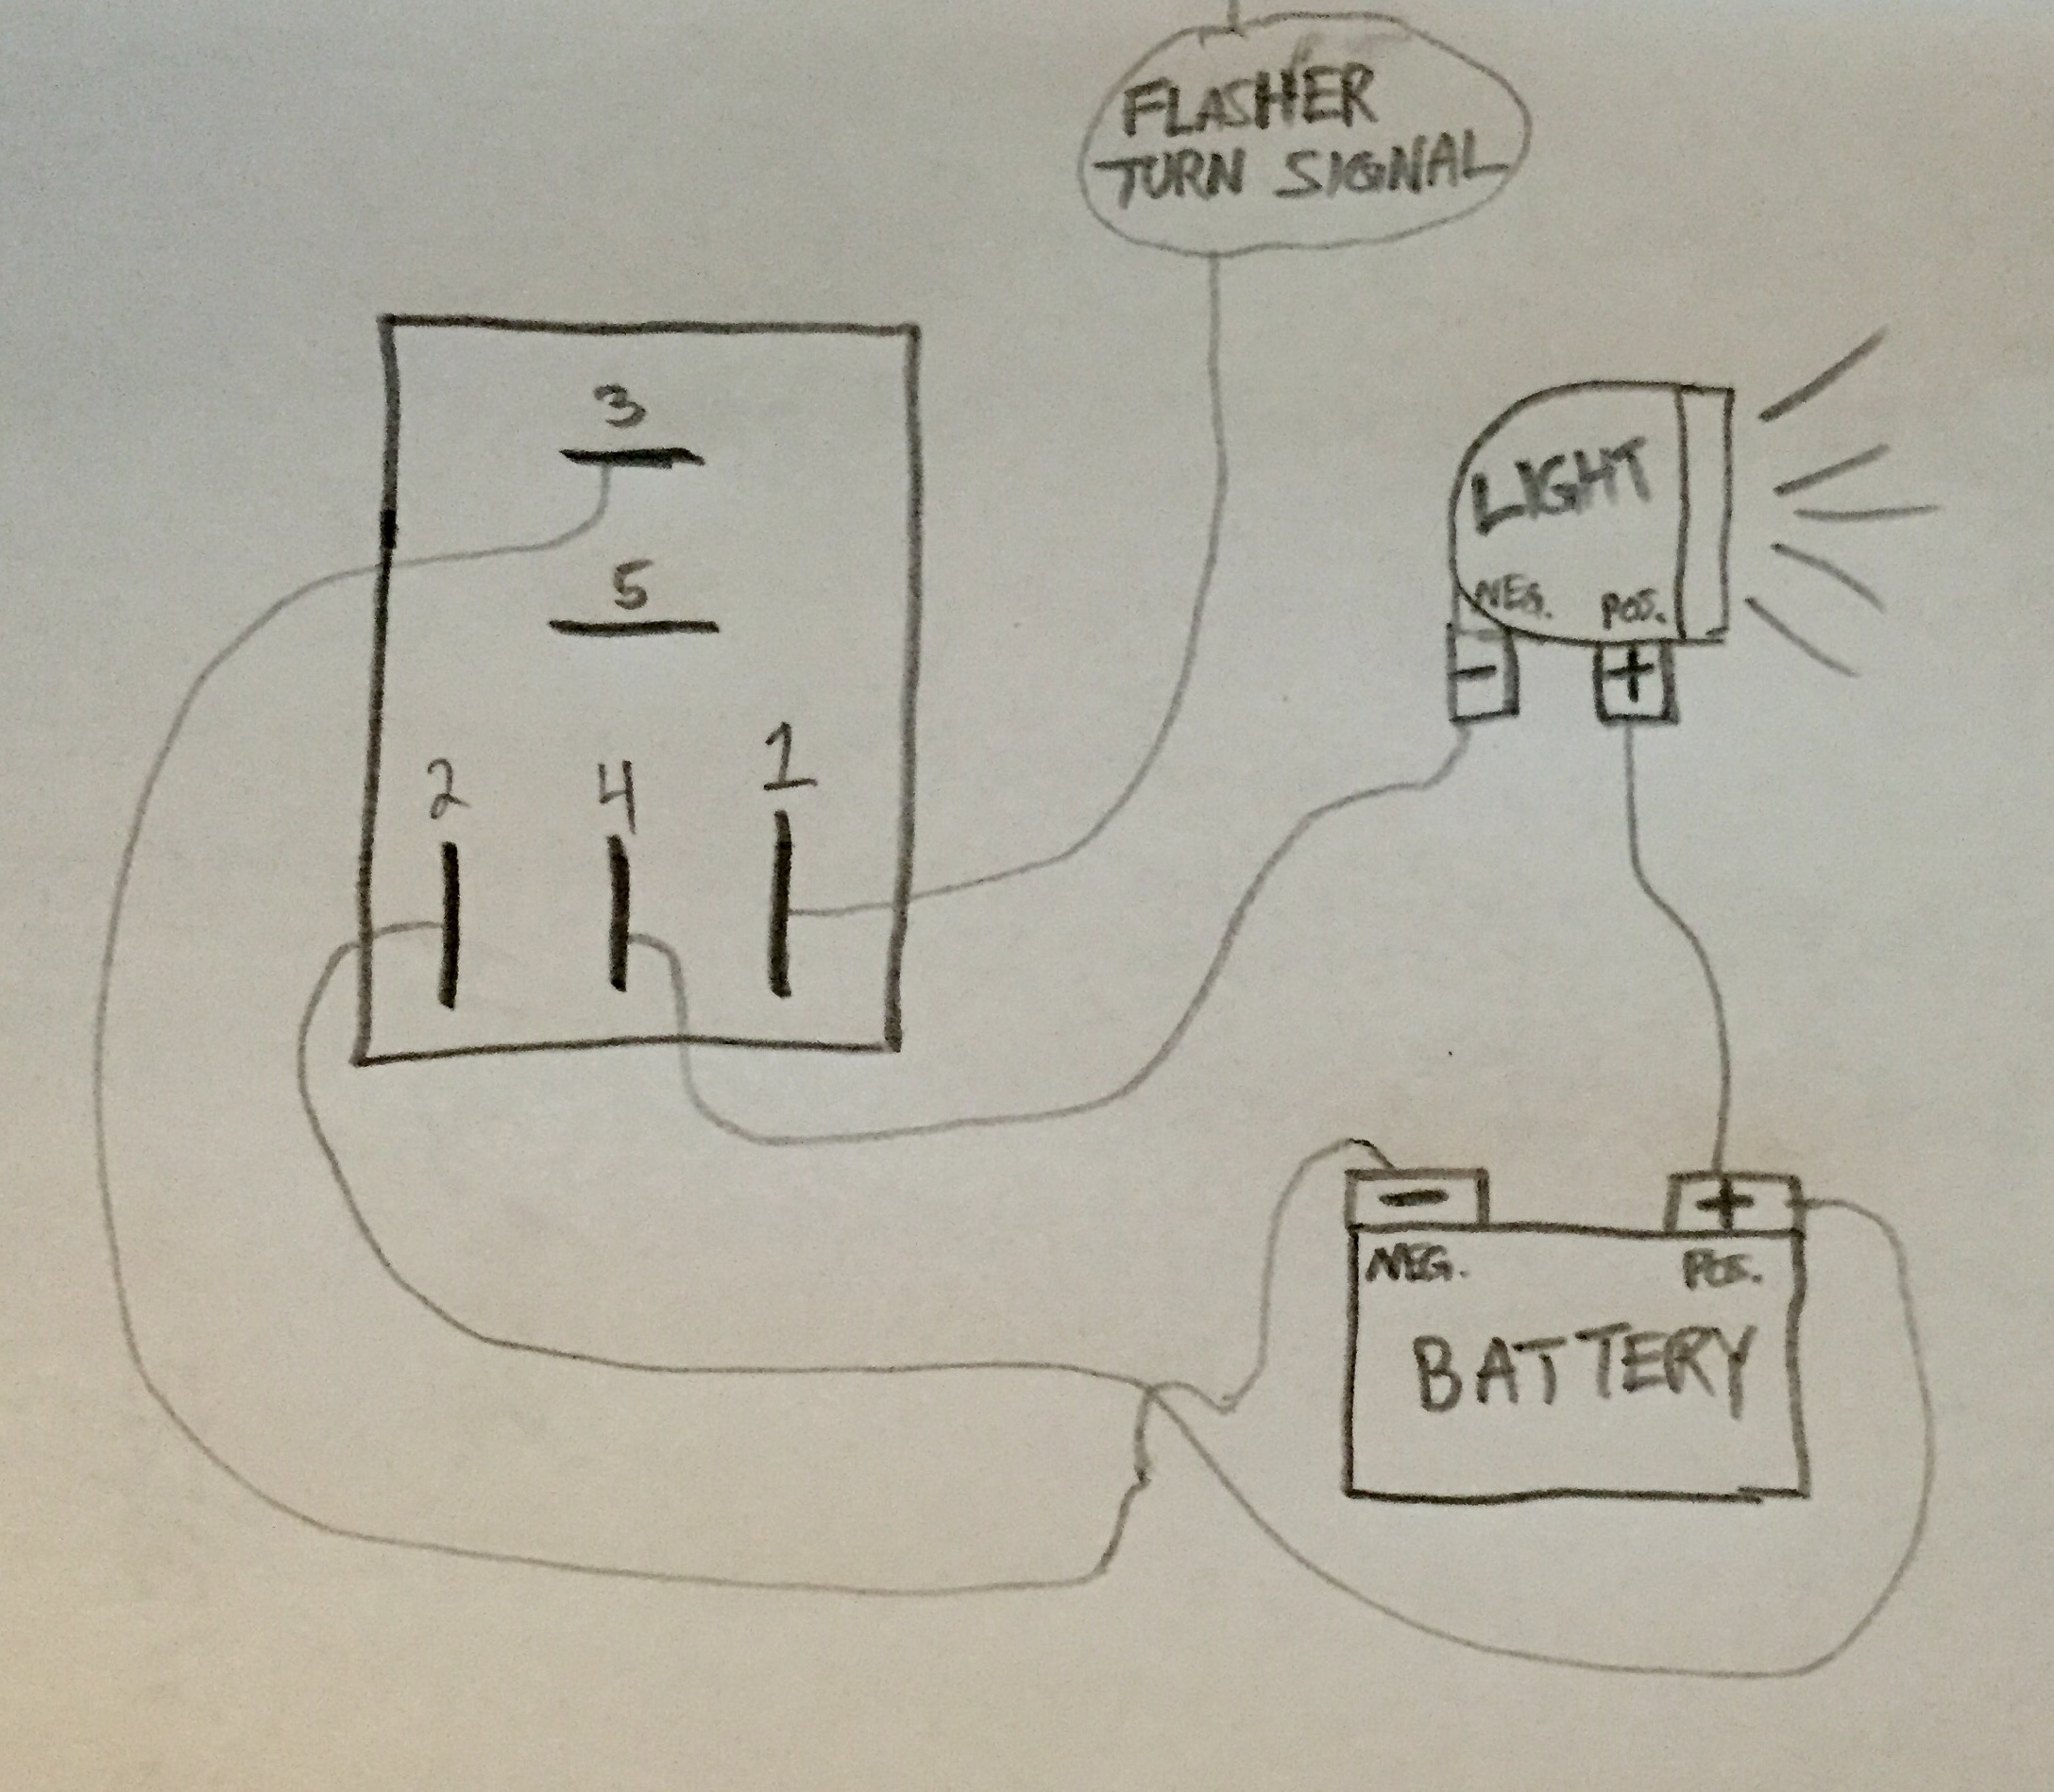 Running Lights Turn Signals Always On Simple Wiring Diagram Ford Think Battery Fullsizerender